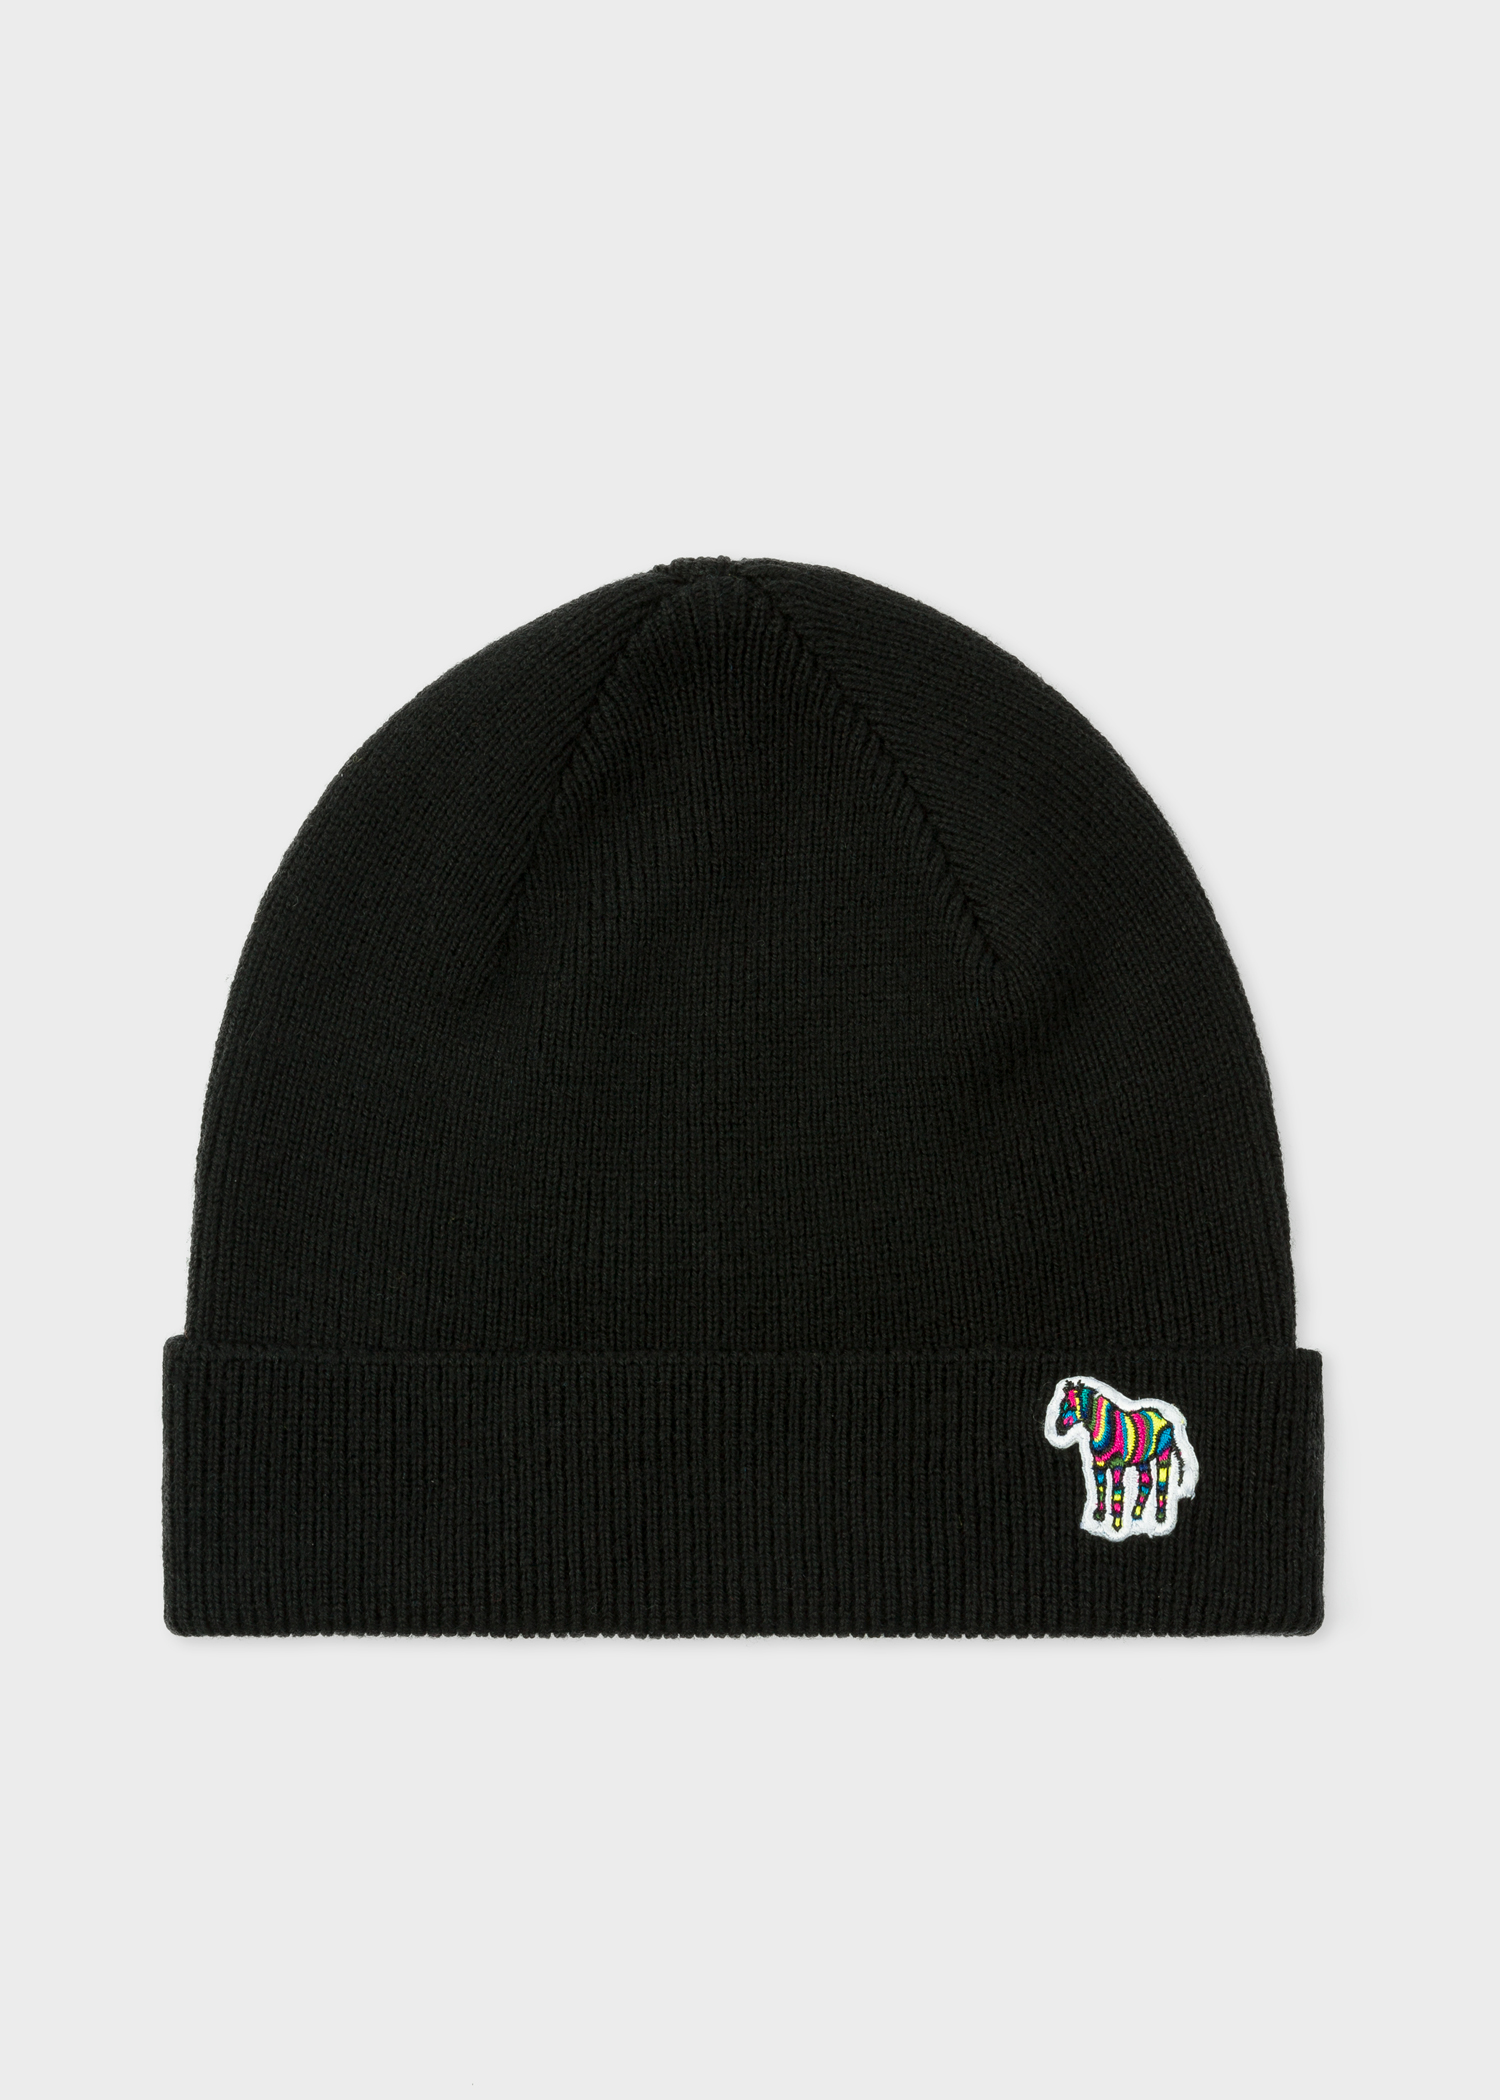 35f44af6f4d Front view - Men s Black  Zebra  Logo Ribbed Lambswool Beanie Hat Paul Smith